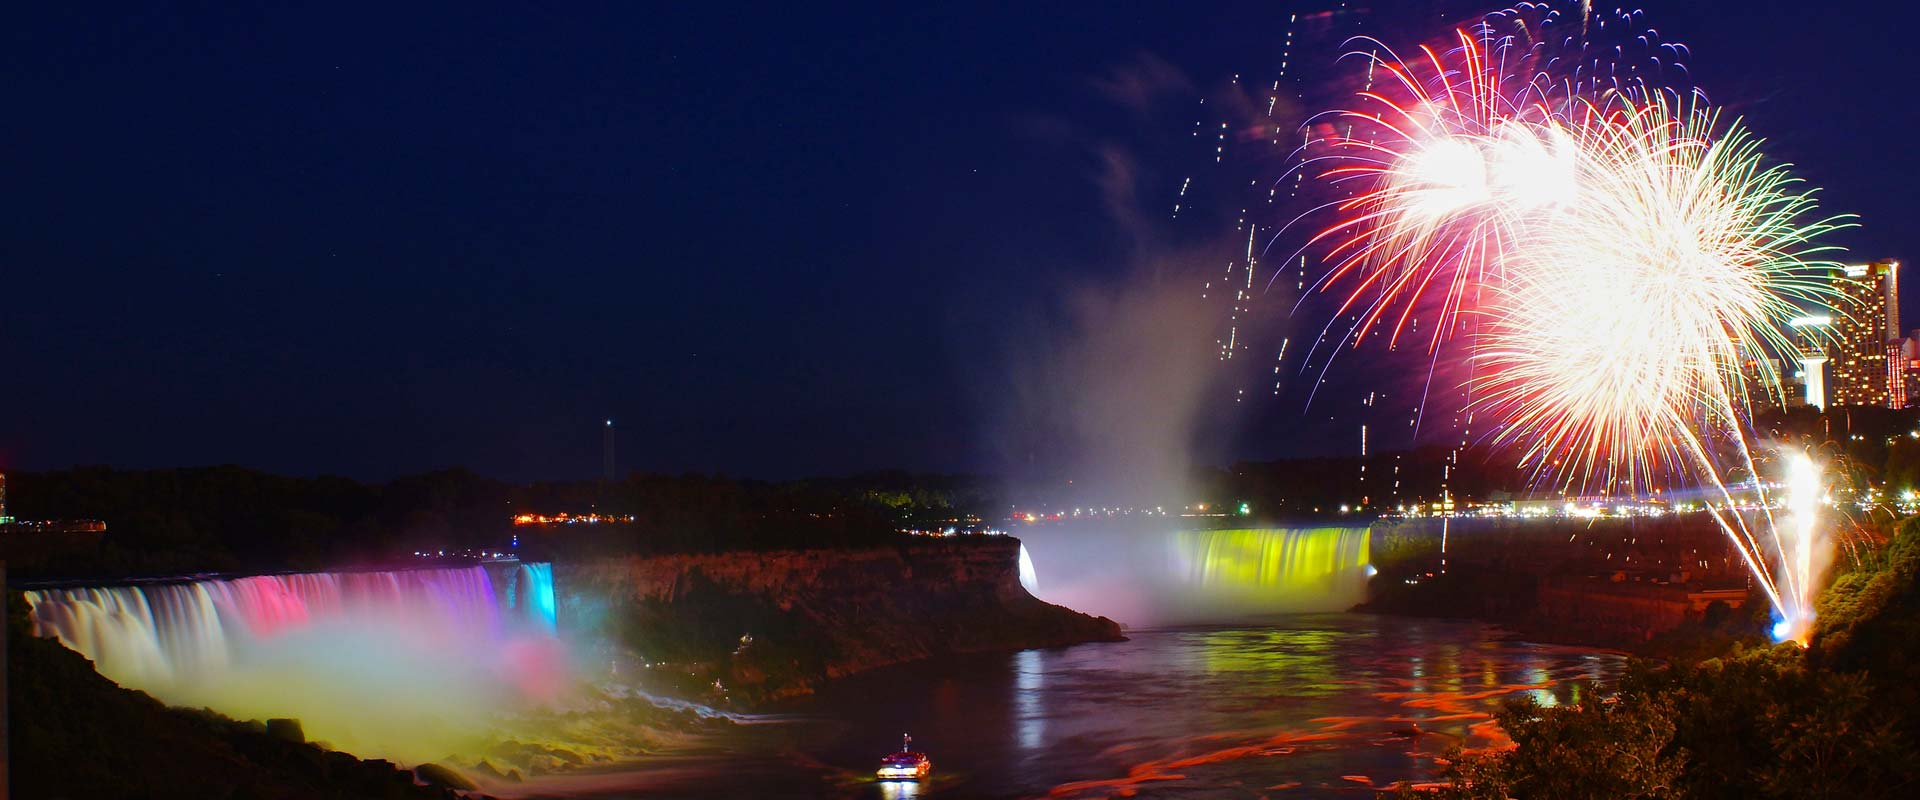 Falls Fireworks Cruise – Niagara Falls Boat Tour at Night